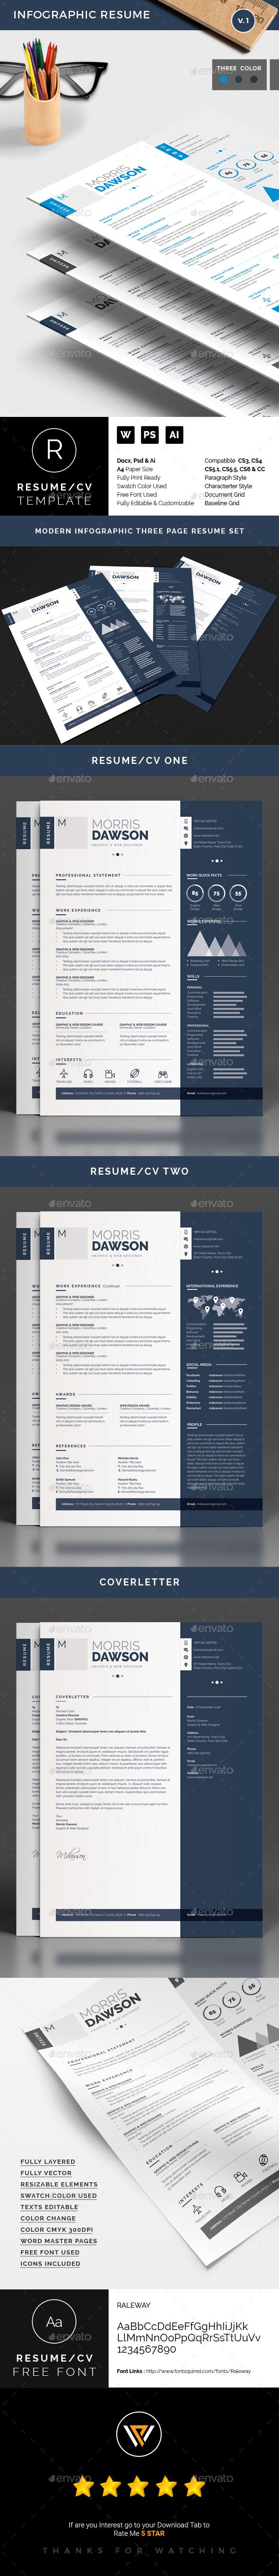 26 best Projects to Try images on Pinterest | Design resume, Resume ...